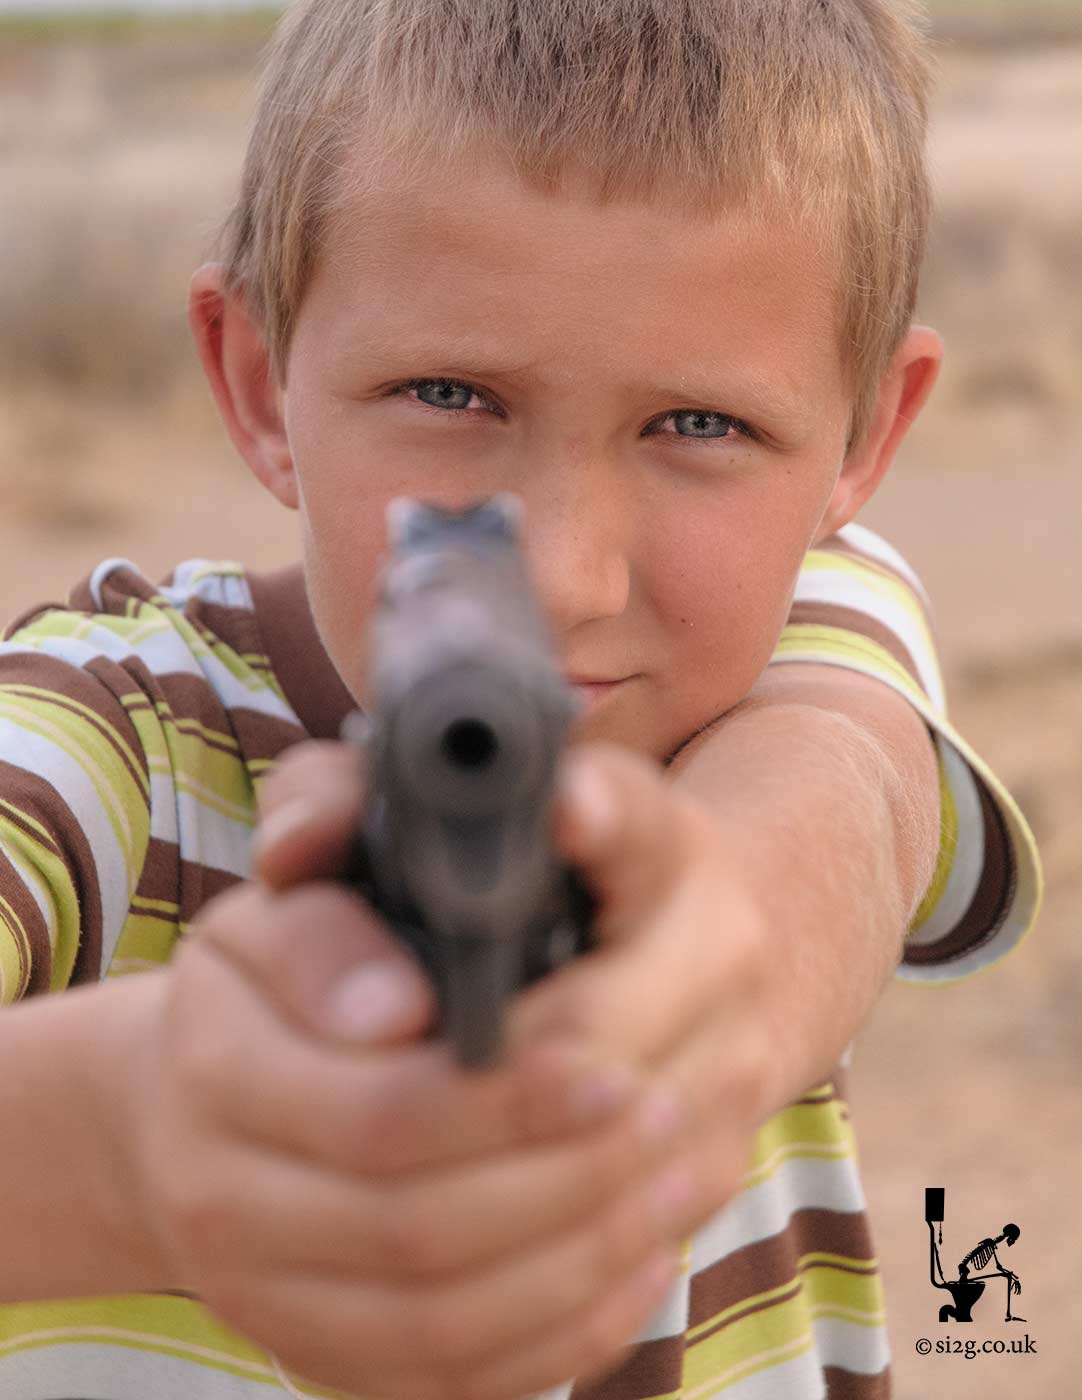 Child with Gun - This South African child has been taught to protect his village using live ammunition.